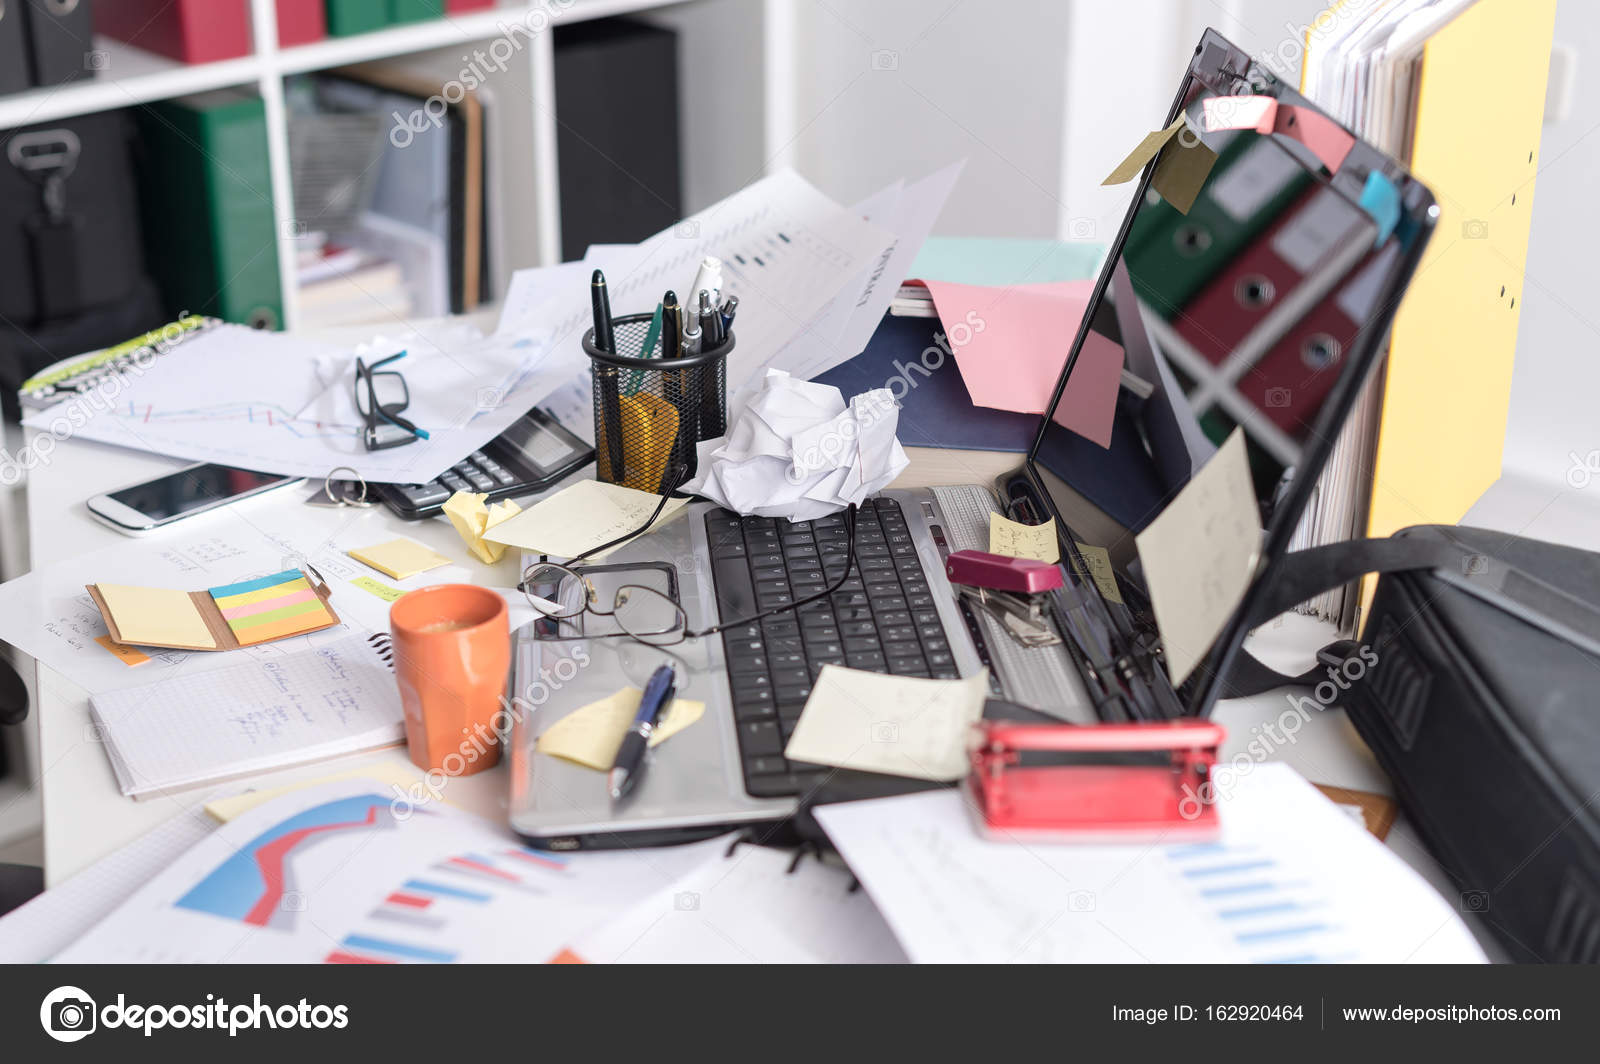 Clean Desk Policy Messy And Cluttered Desk — Stock Photo © Thodonal #162920464